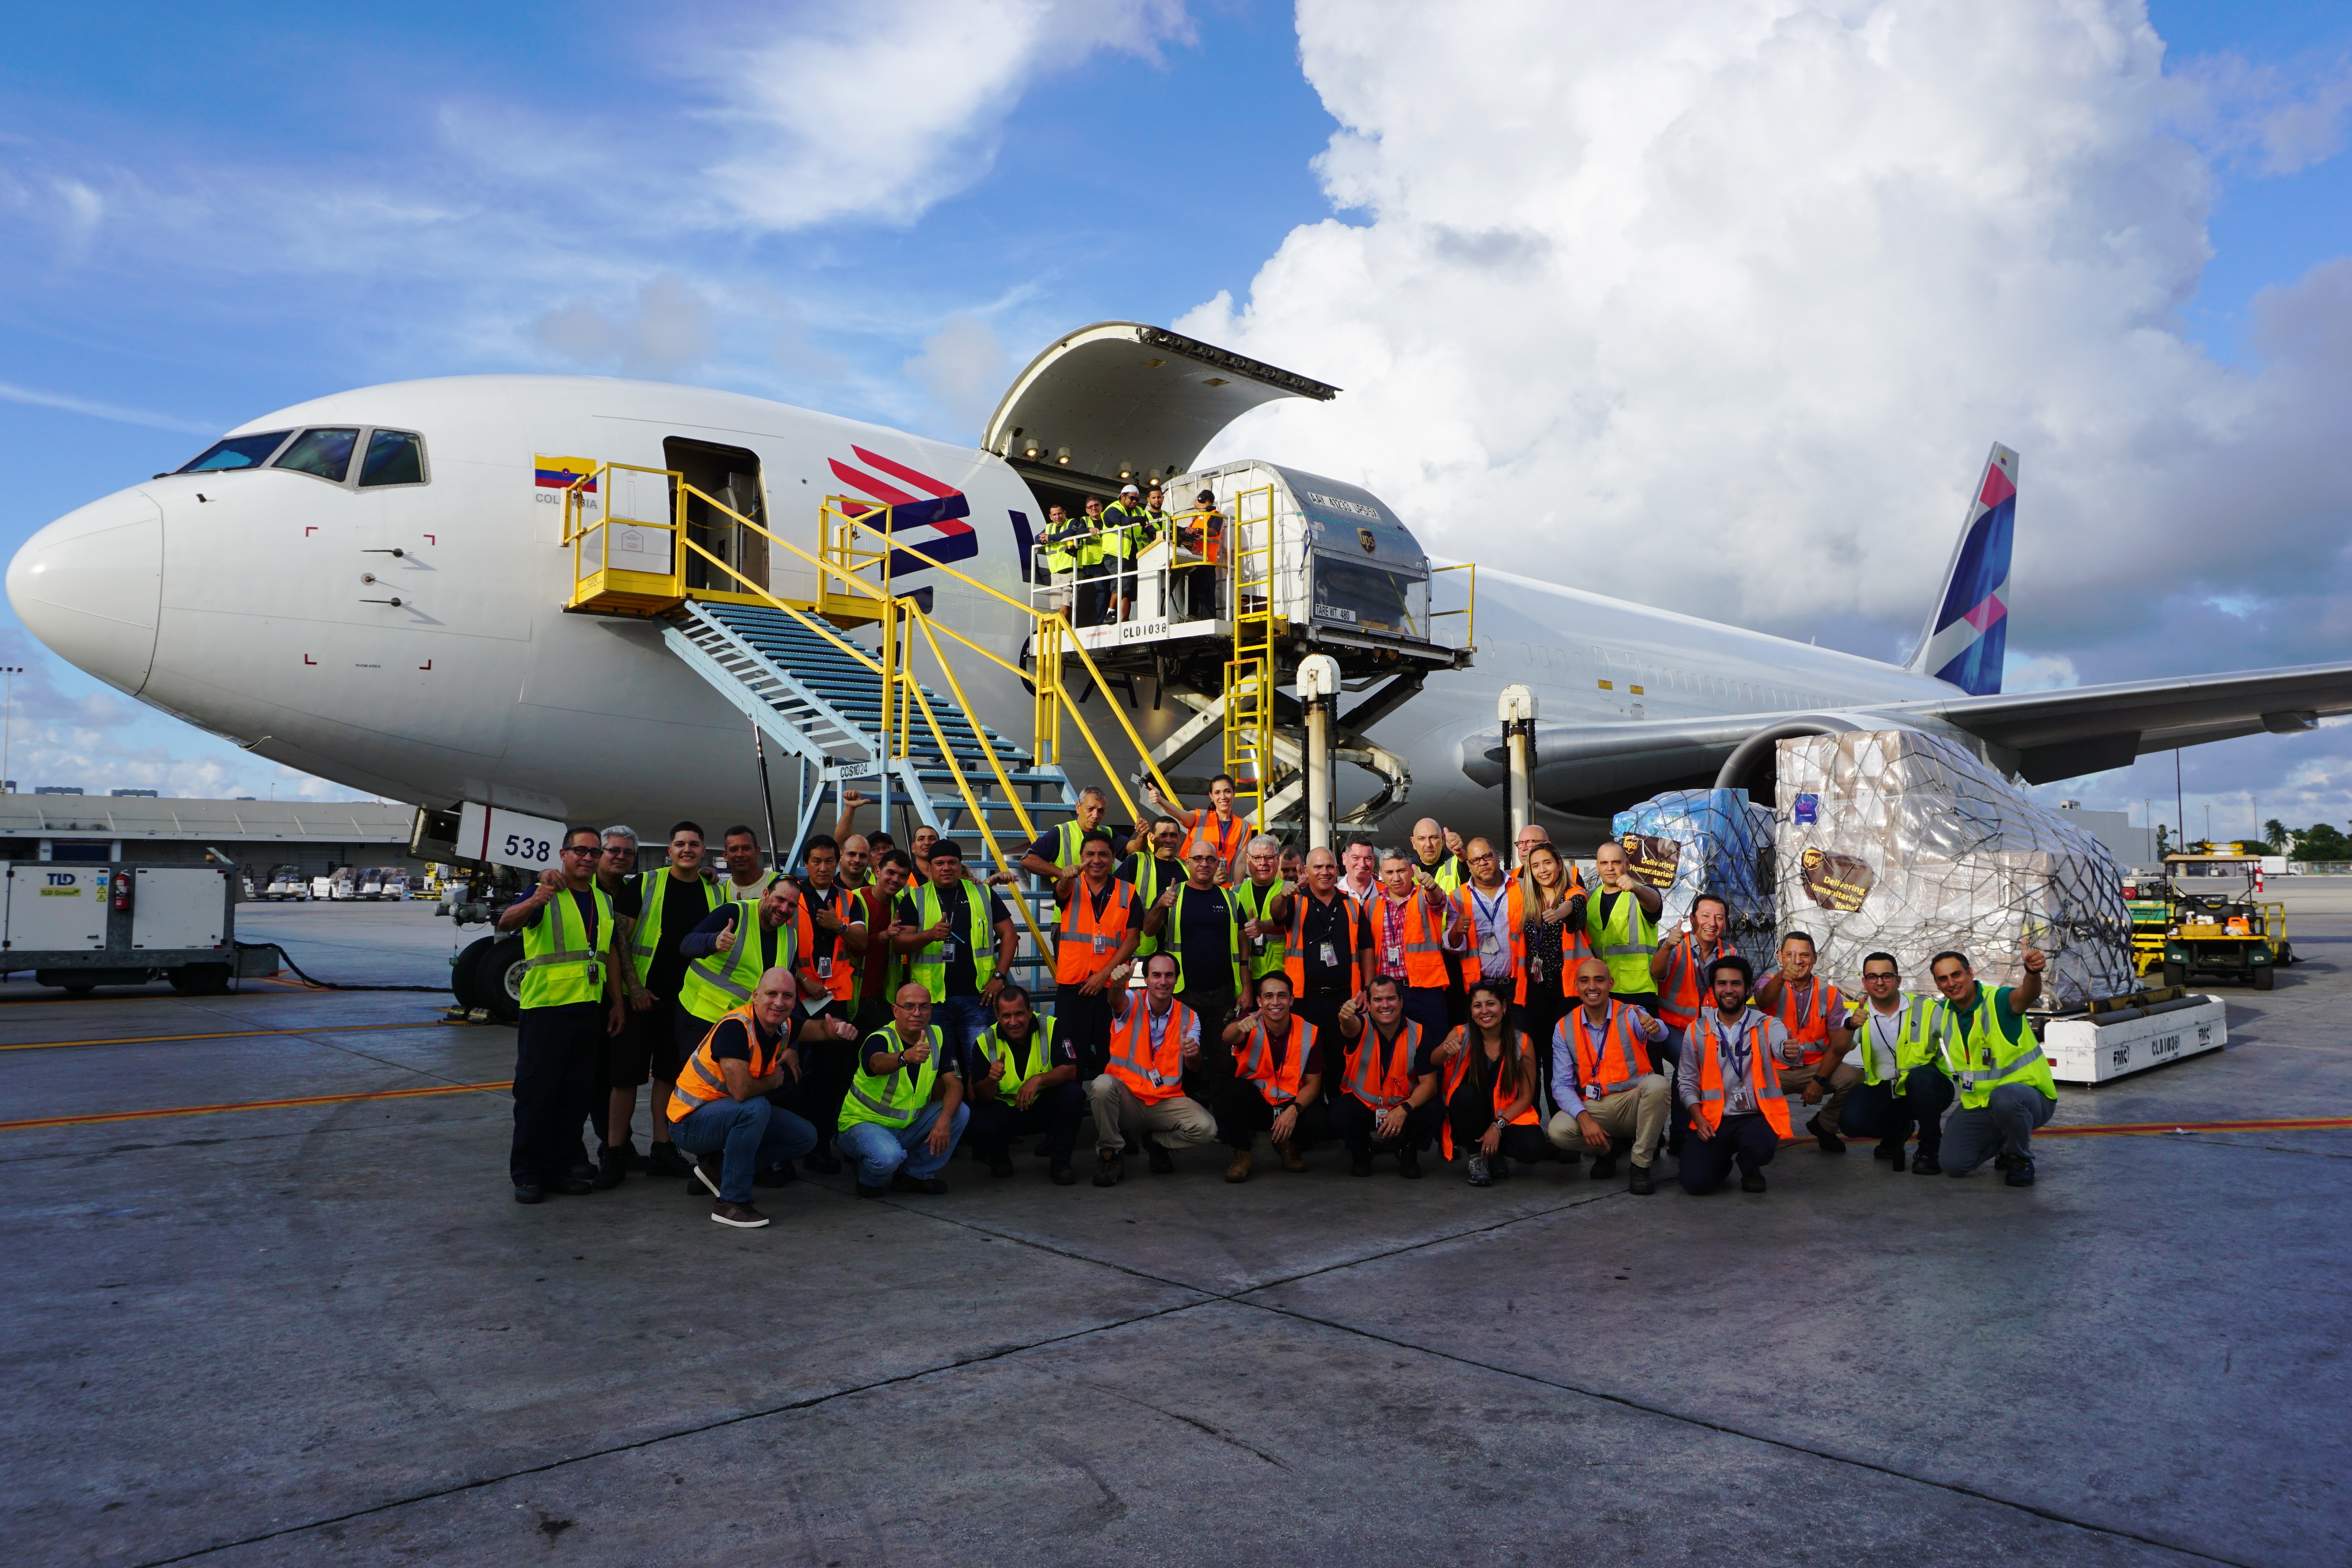 LATAM Group delivers relief cargo to the Bahamas